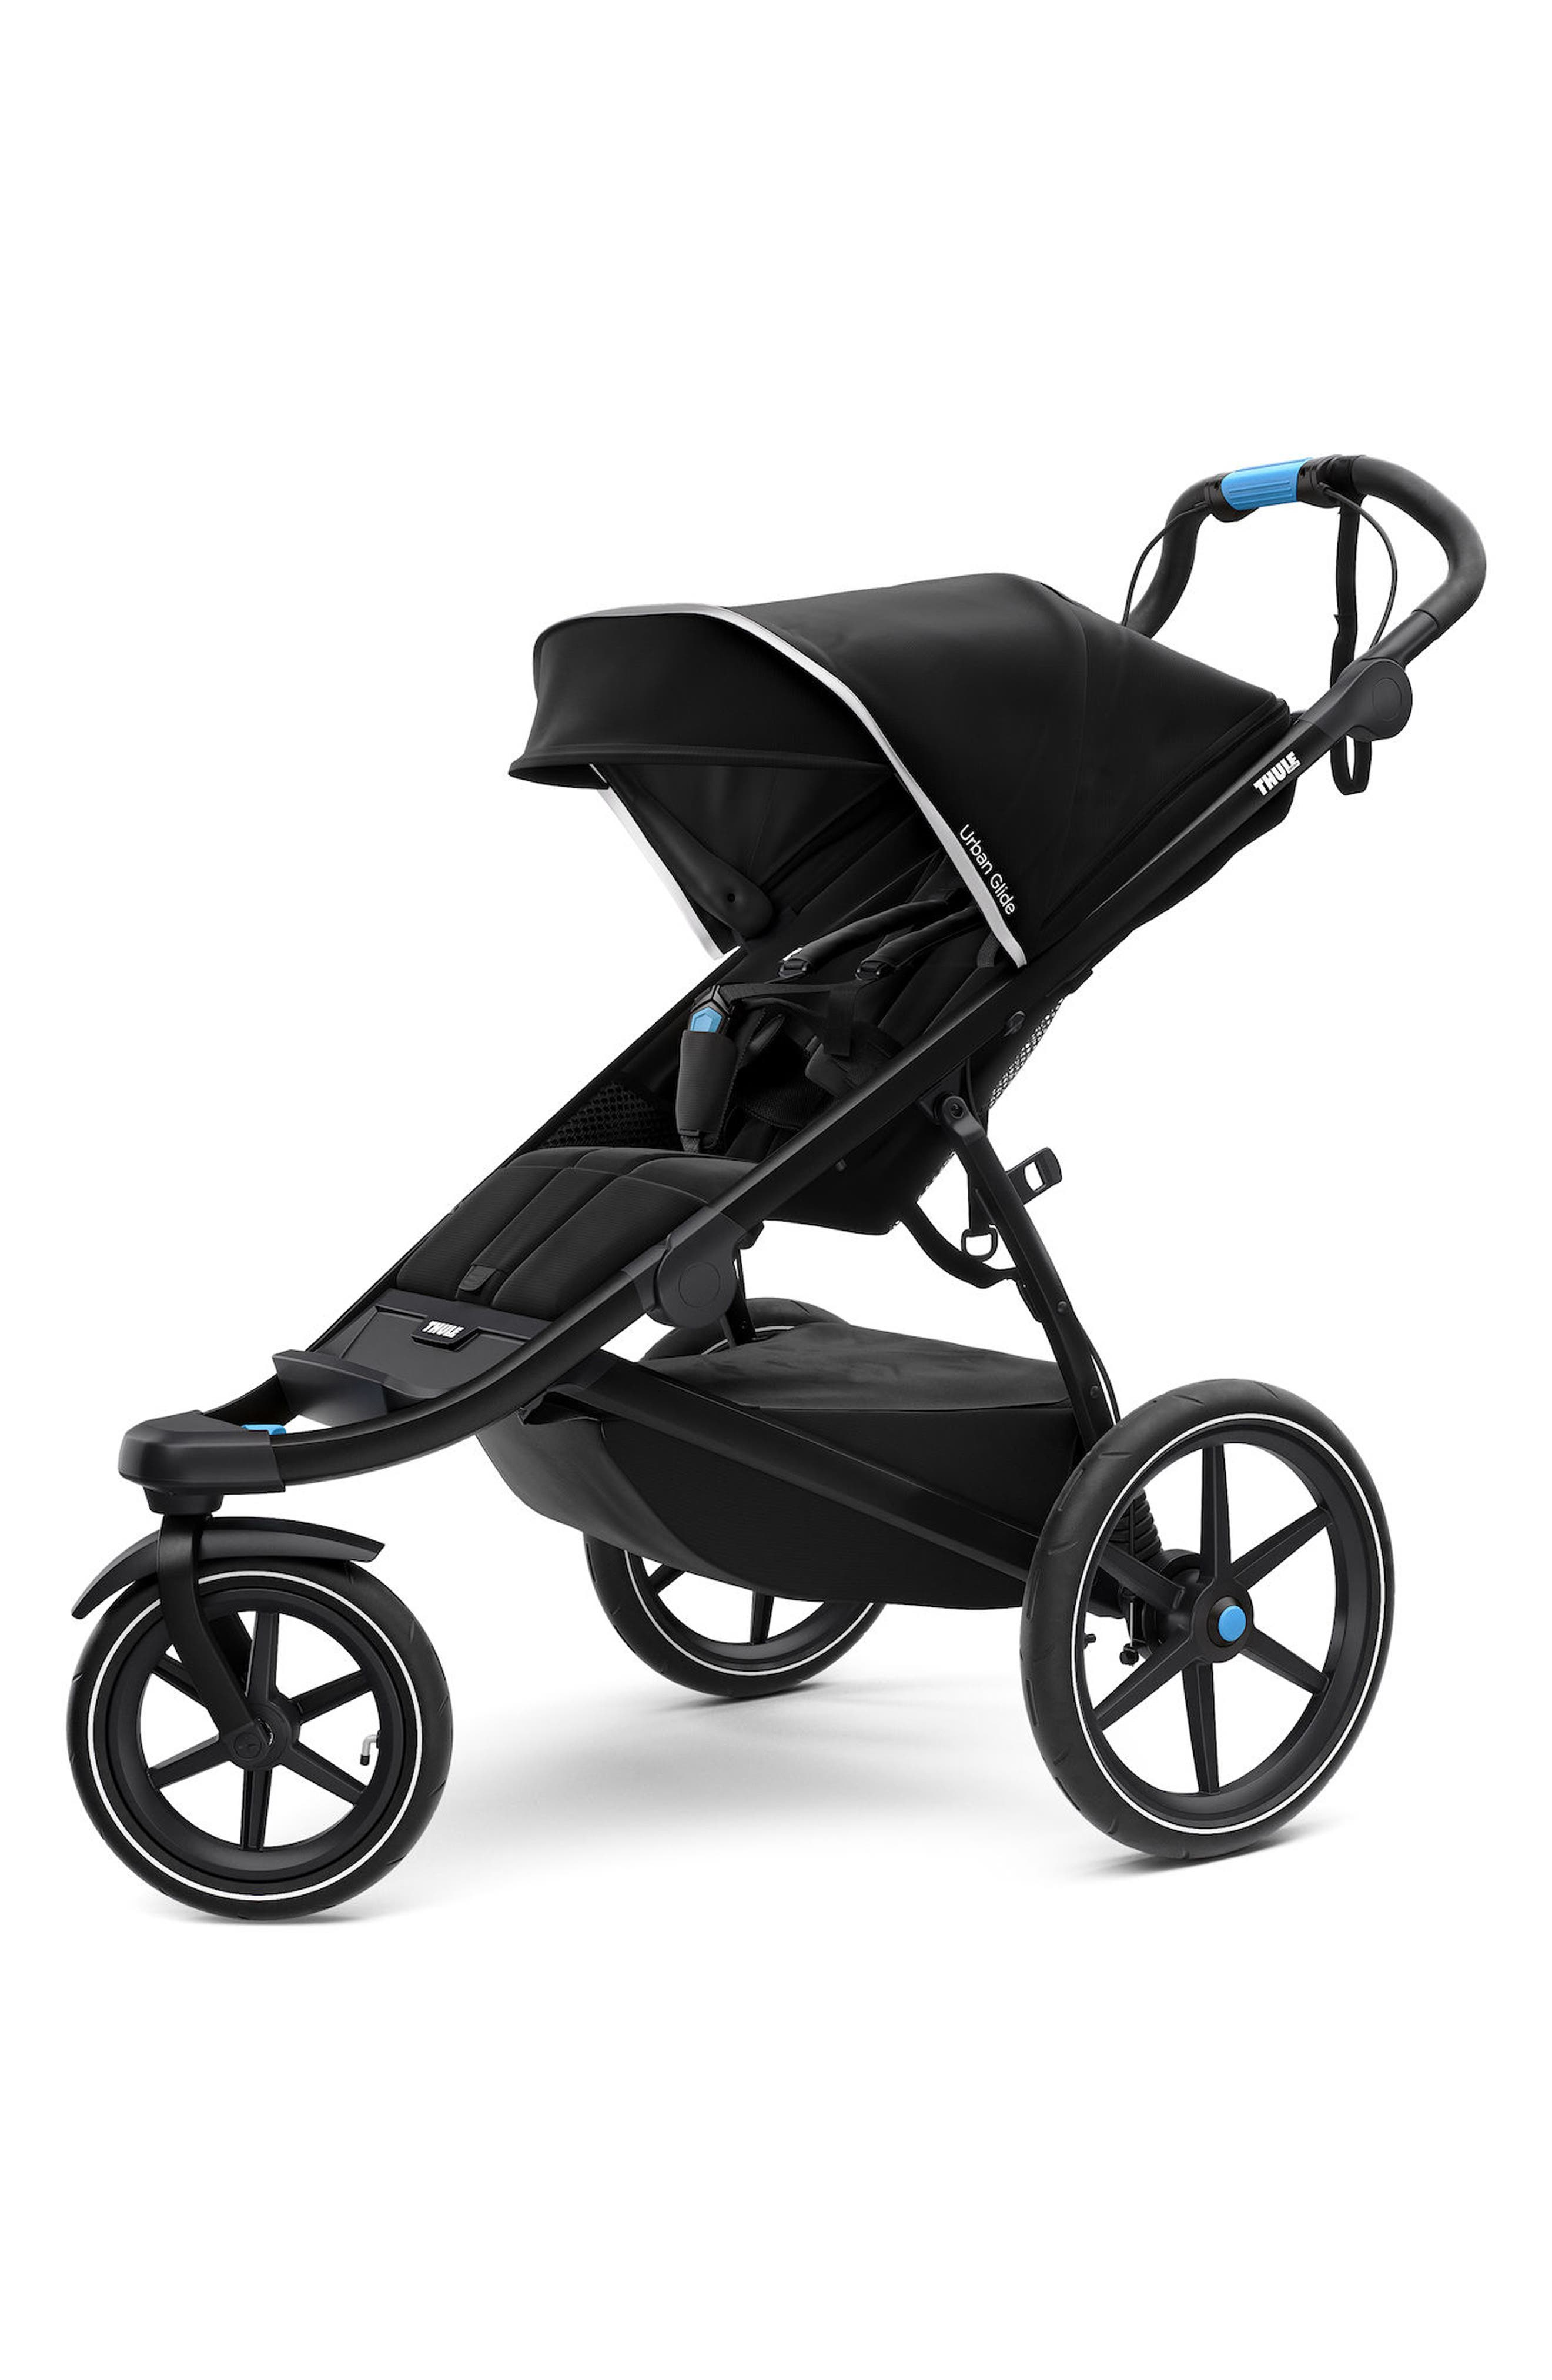 Urban Glide 2 Jogging Stroller with Silver Frame,                             Main thumbnail 1, color,                             Black/ Black Frame